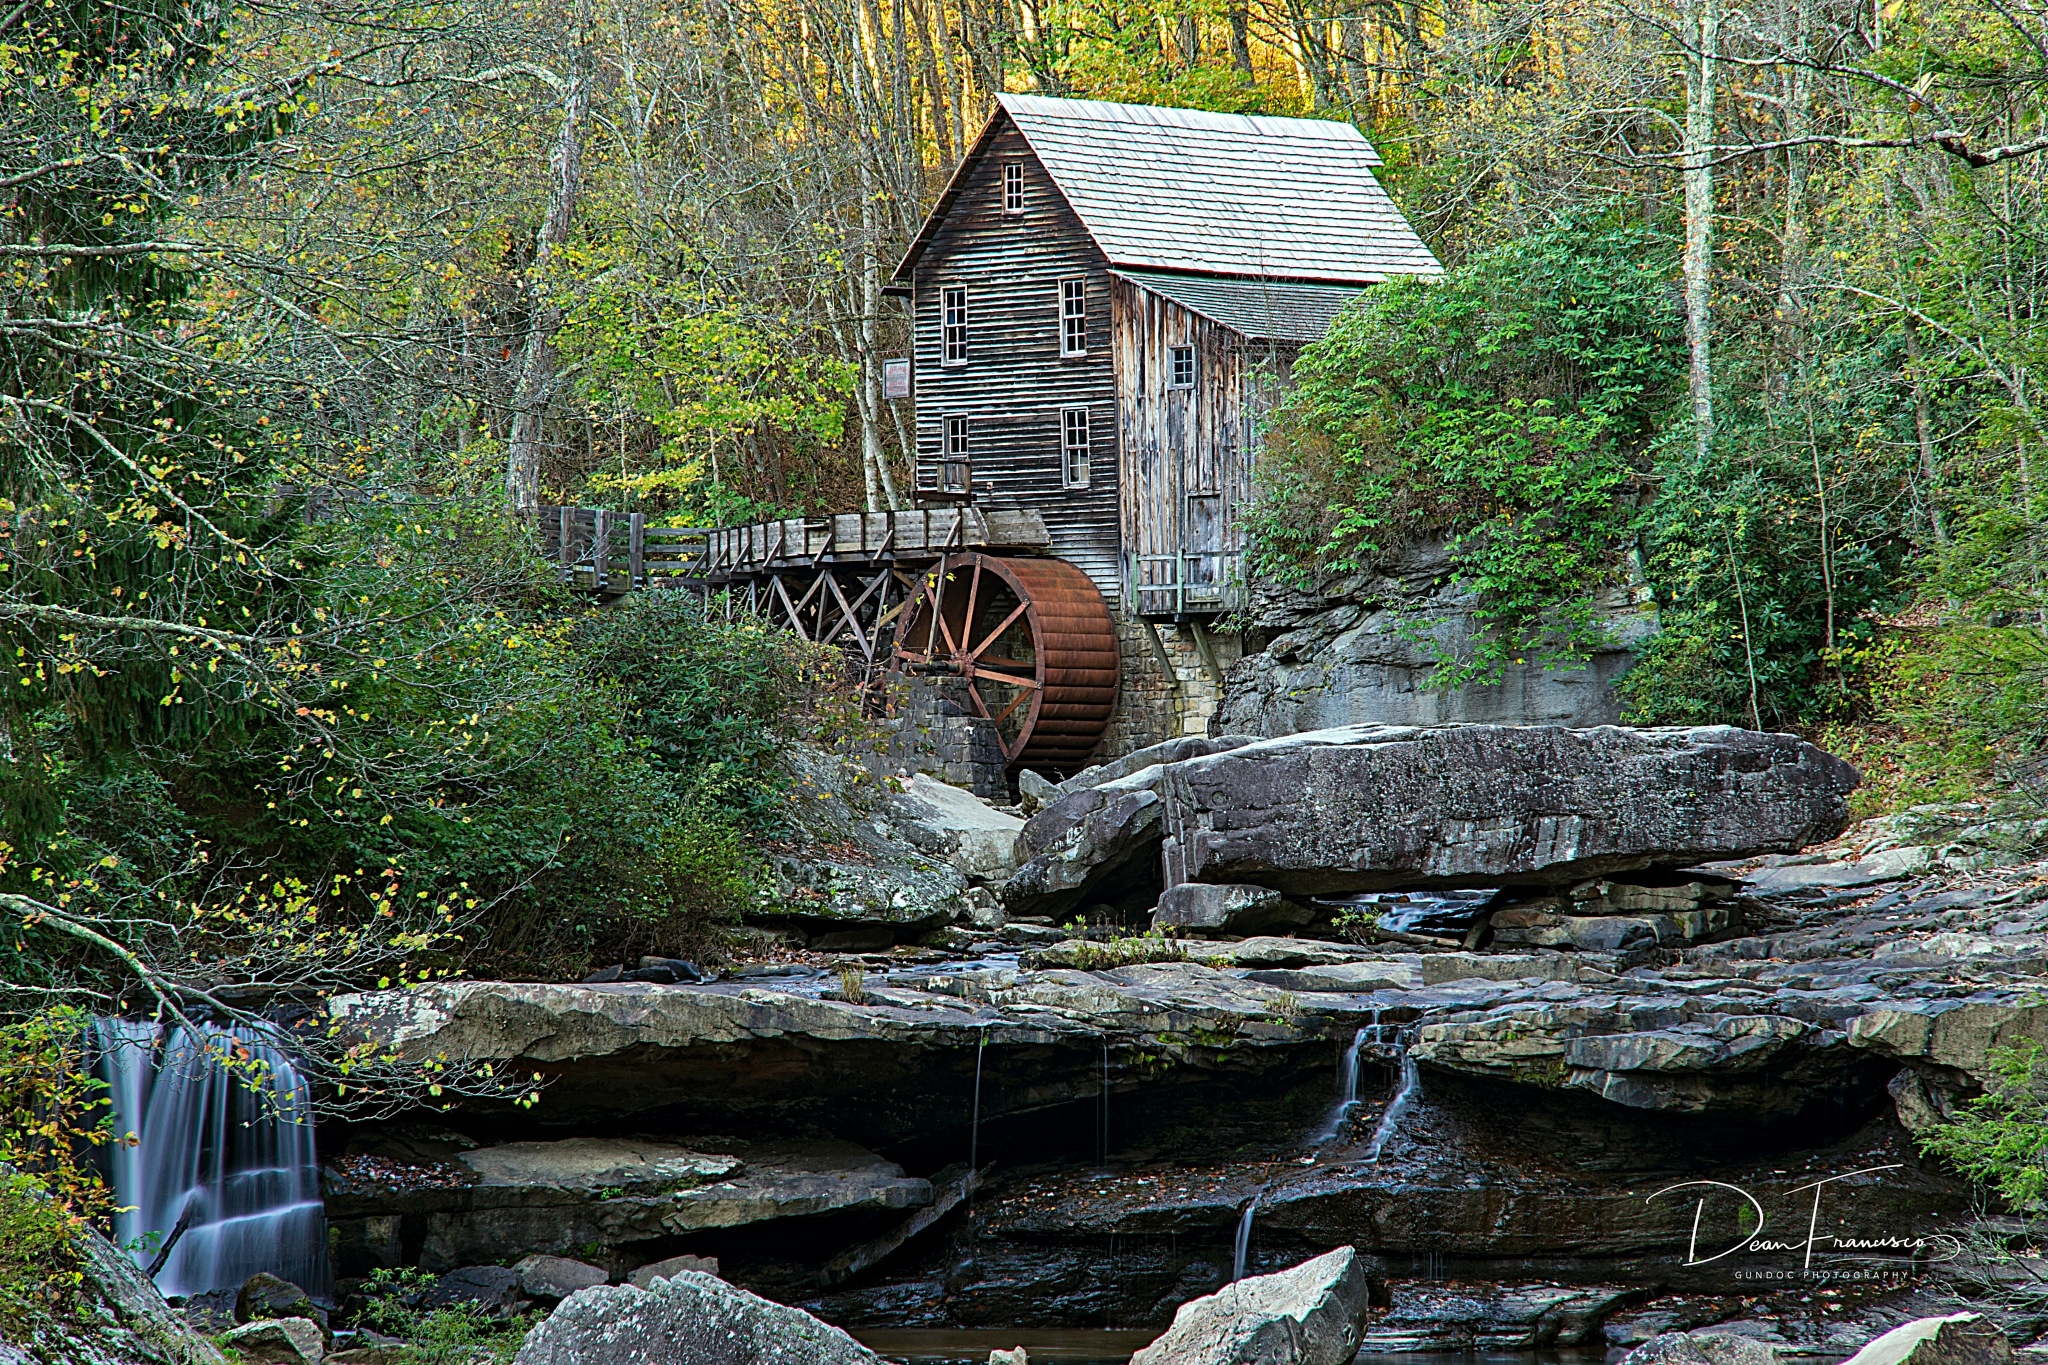 Glade Creek Grist Mill by Dean Francisco